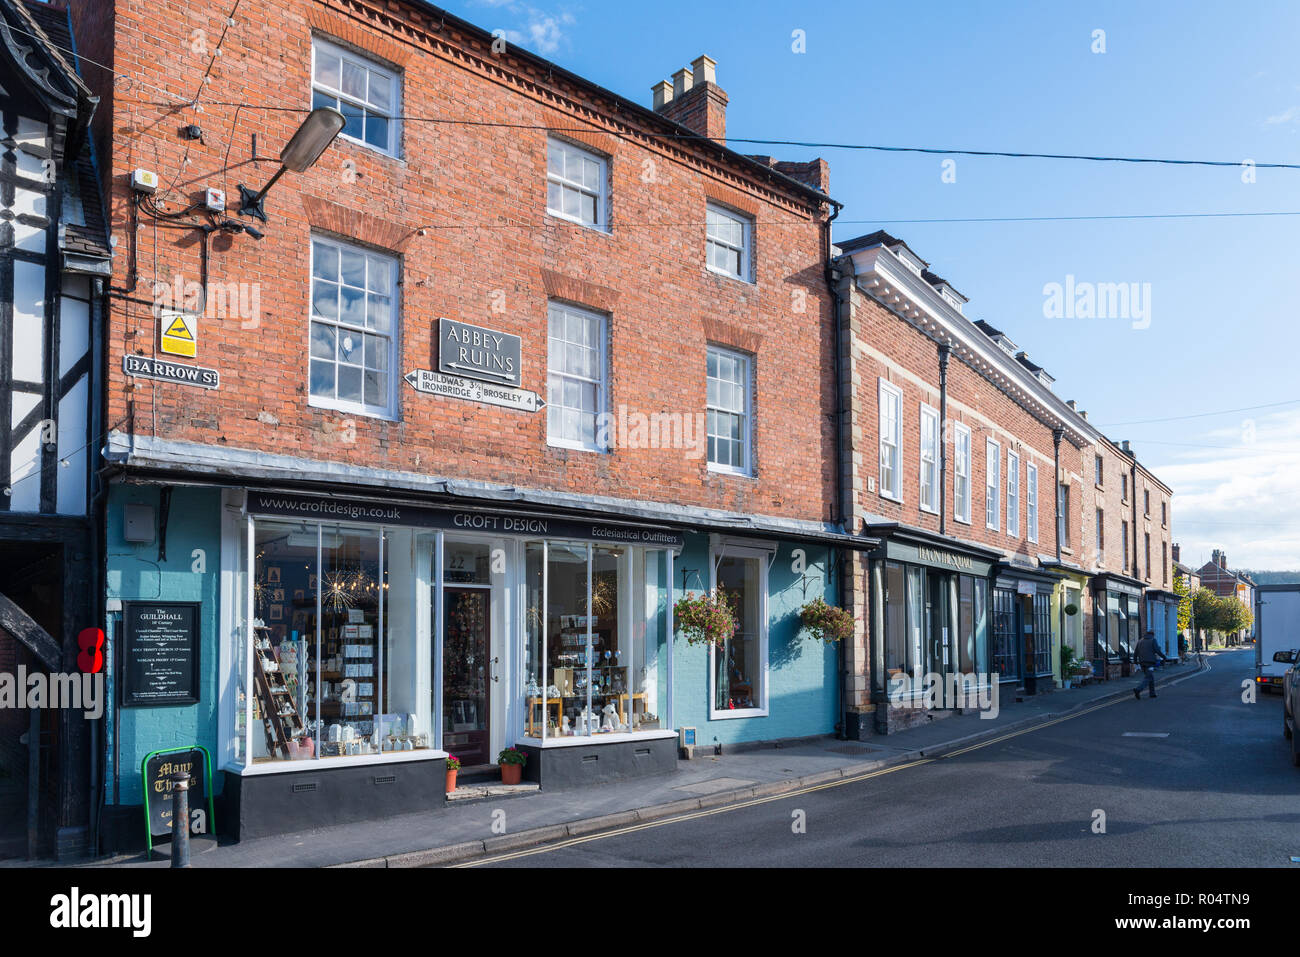 Croft Design Ecclesiastical Outfitters shop in Barrow Street, Much Wenlock, Shropshire, - Stock Image